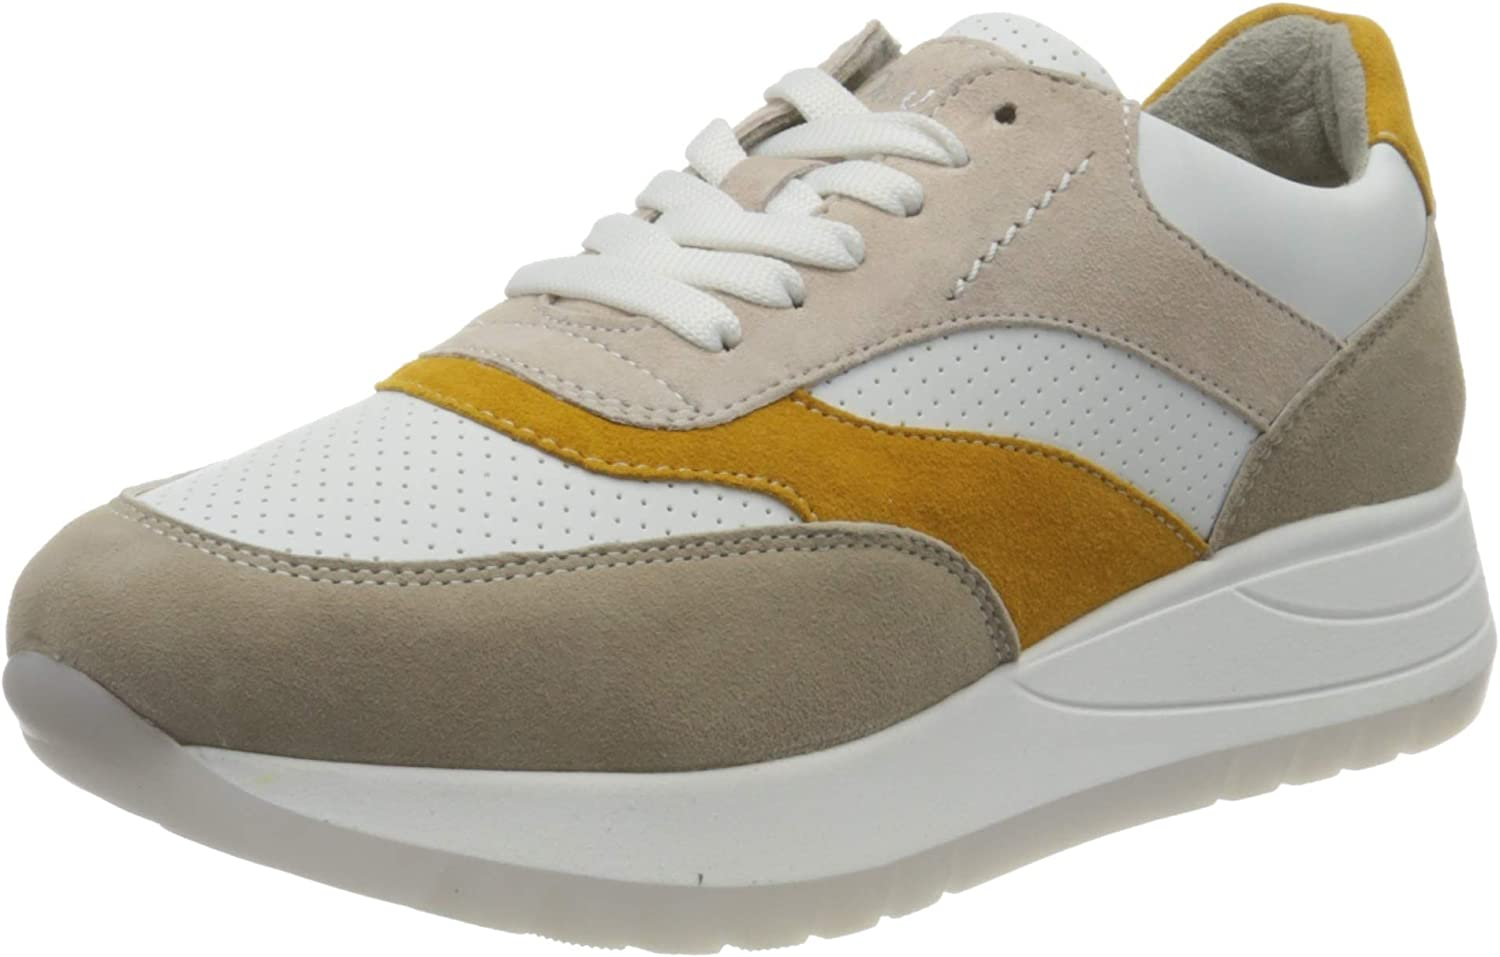 San Antonio Rapid rise Mall s.Oliver Women's Sneakers Low-Top